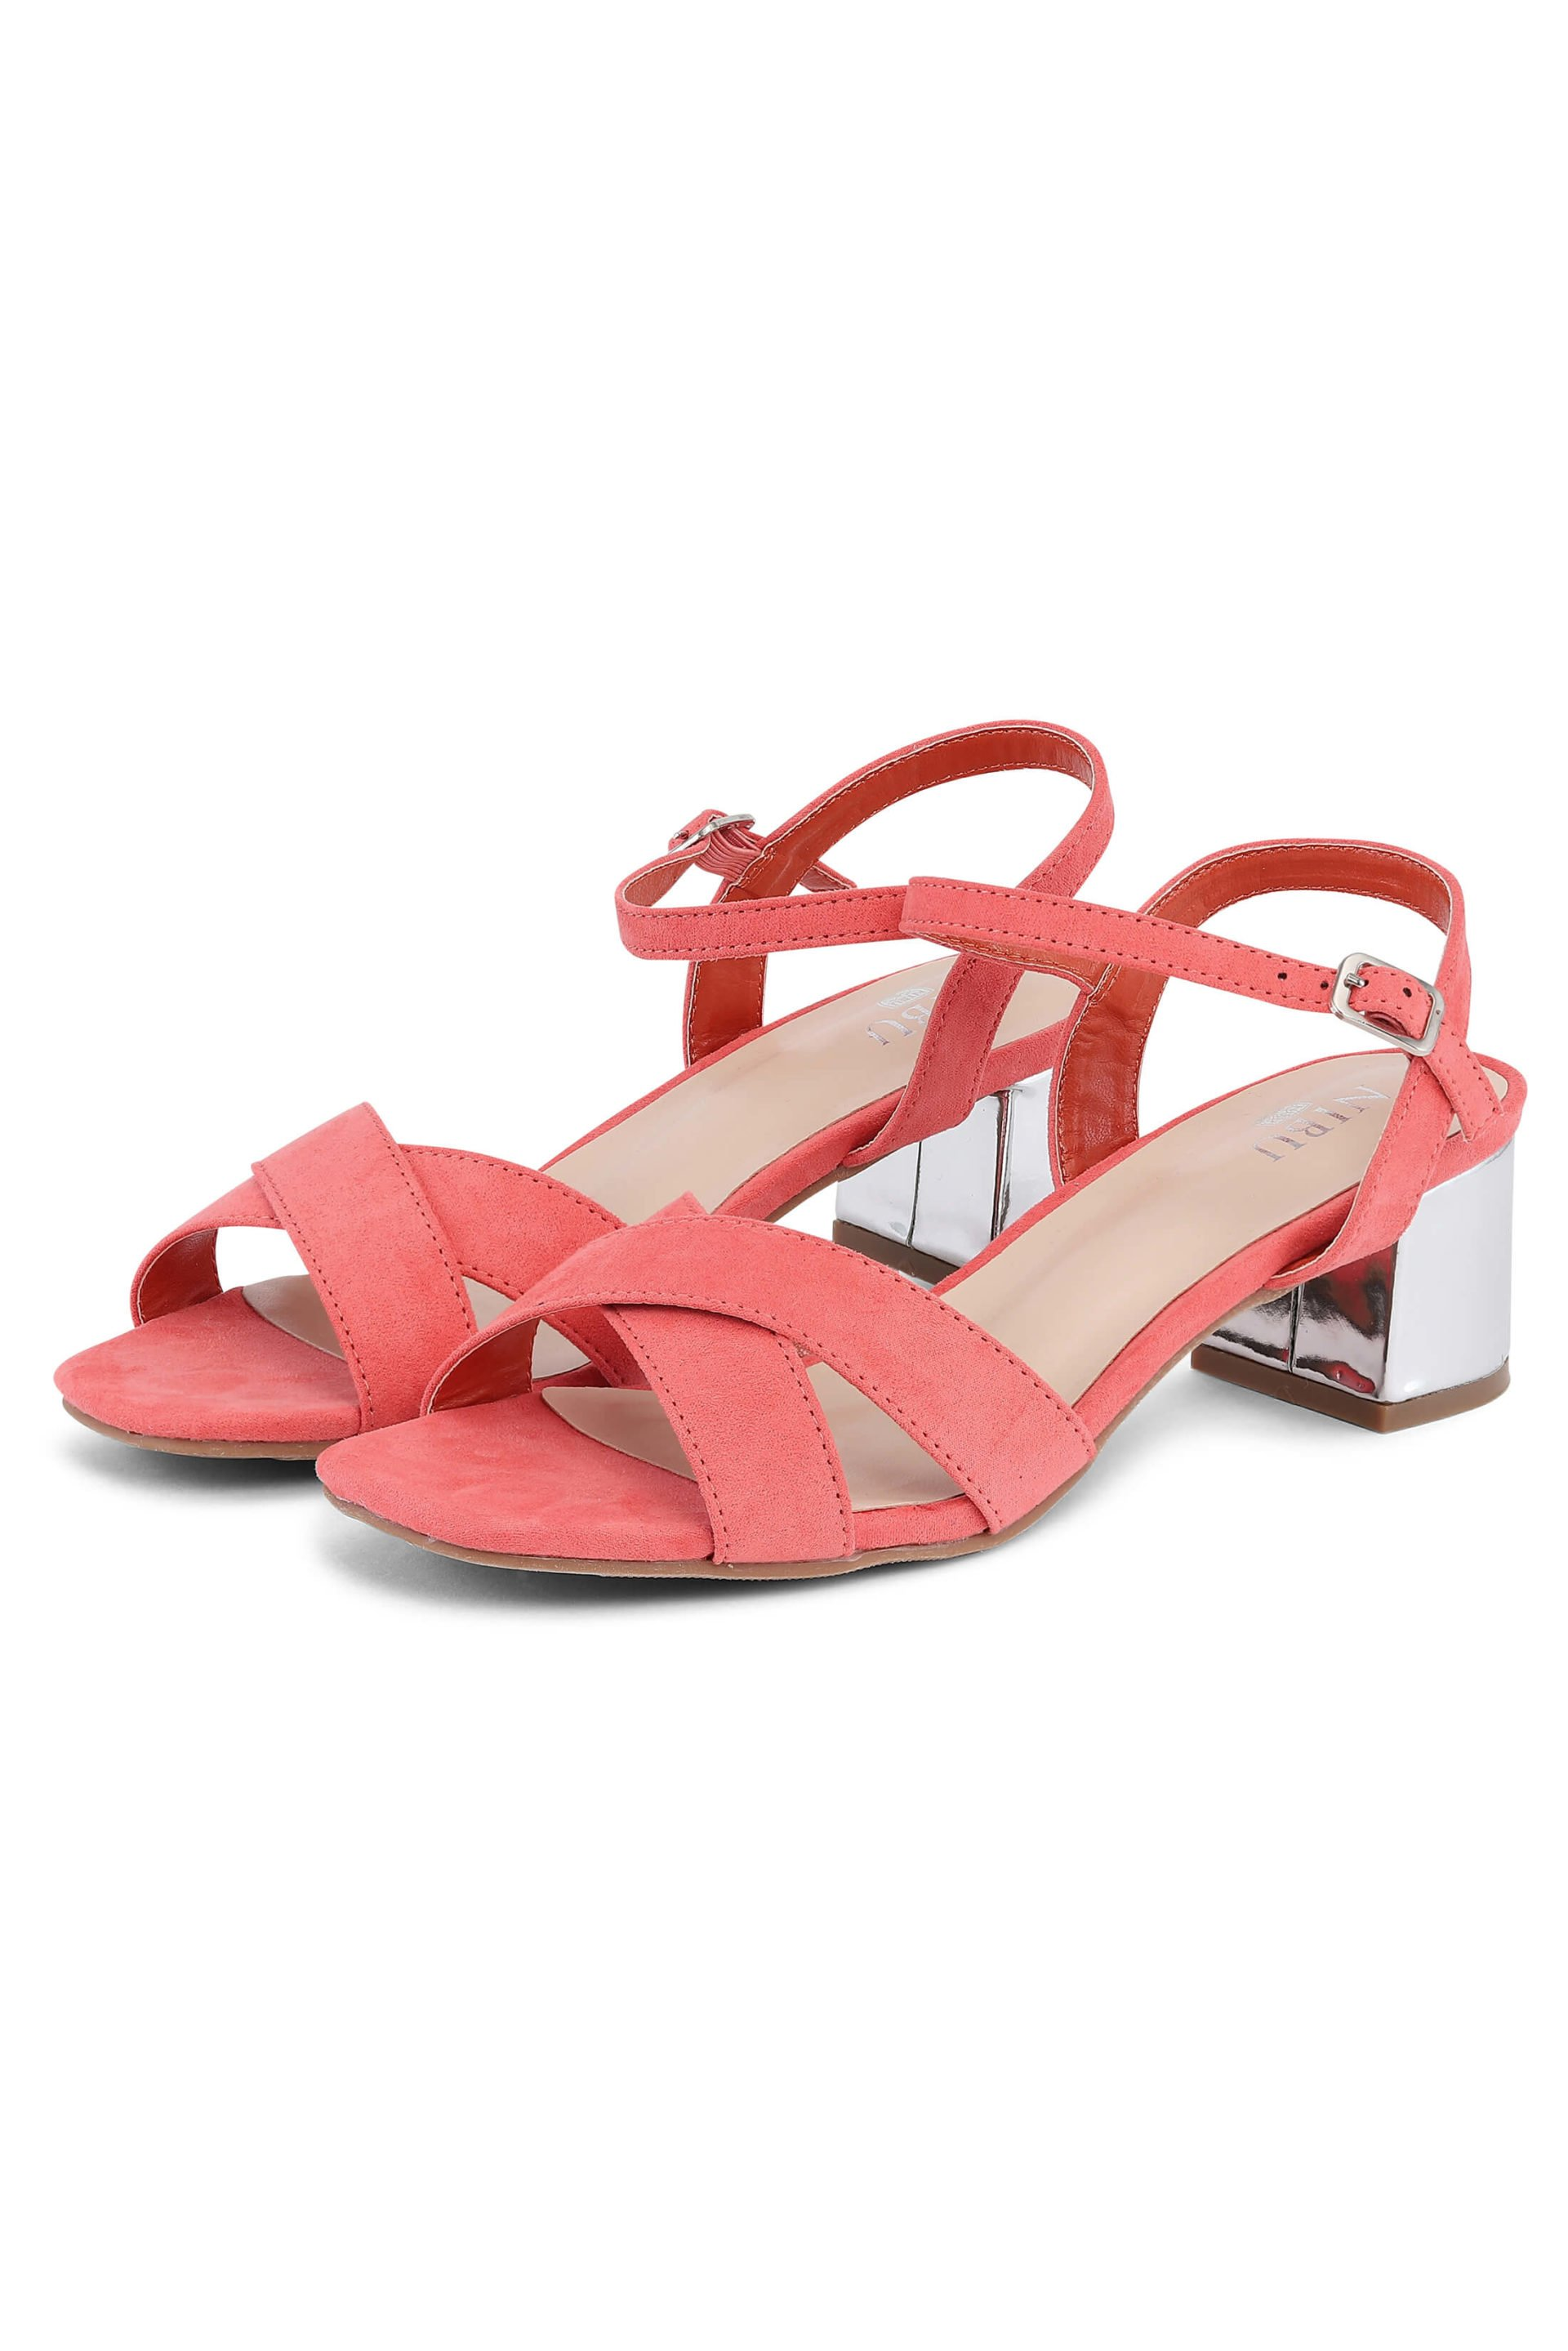 Earth-colored sandals